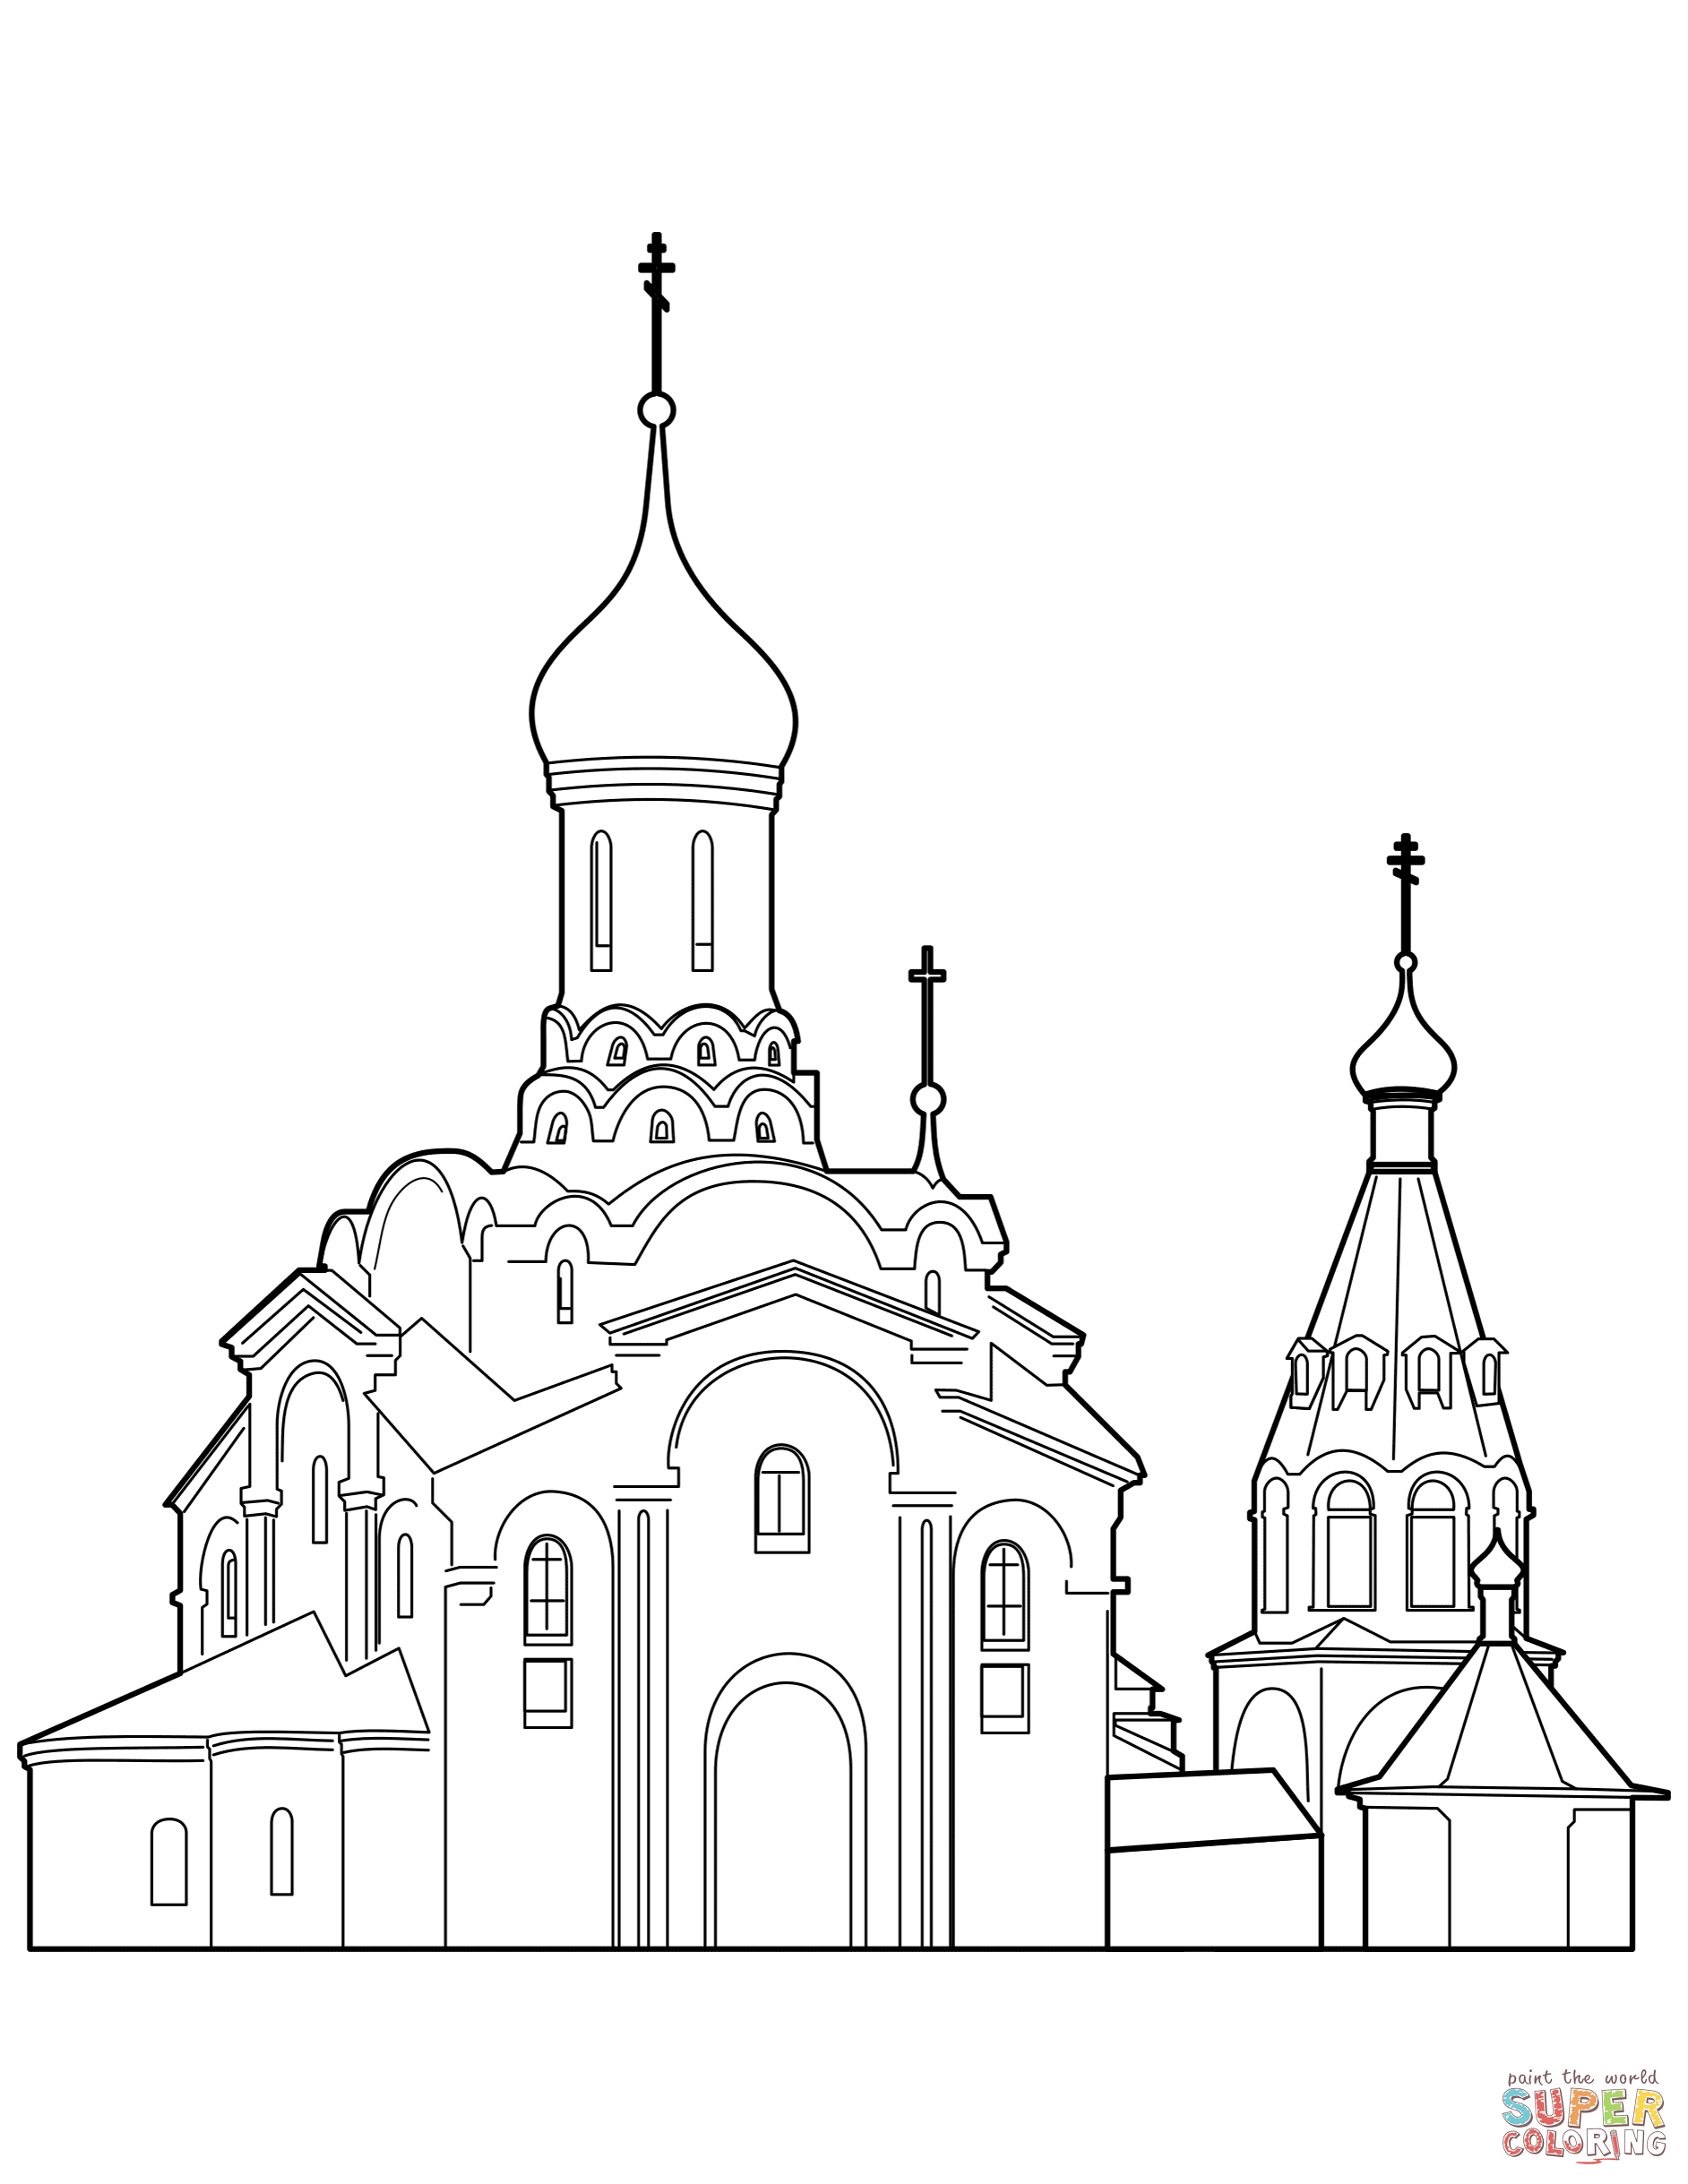 church coloring page reading a book at church frontyard coloring pages best coloring church page